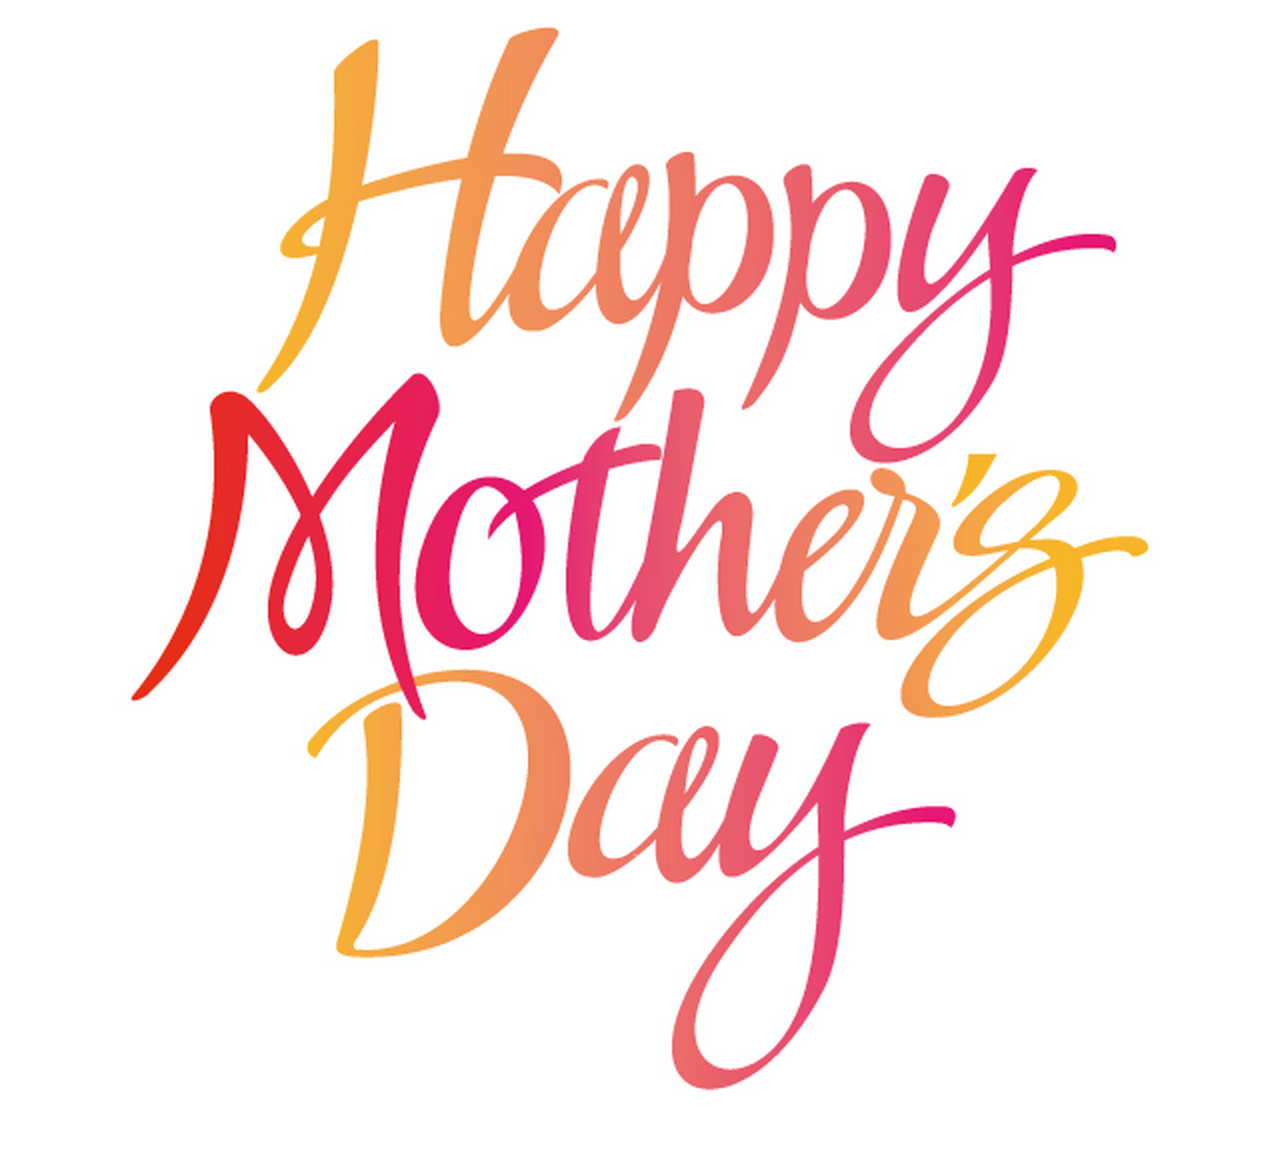 Happy Mothers day quotes from daughter u0026 daughter in law 2017 u2013 The day has  come - Happy Mothers Day Sign PNG